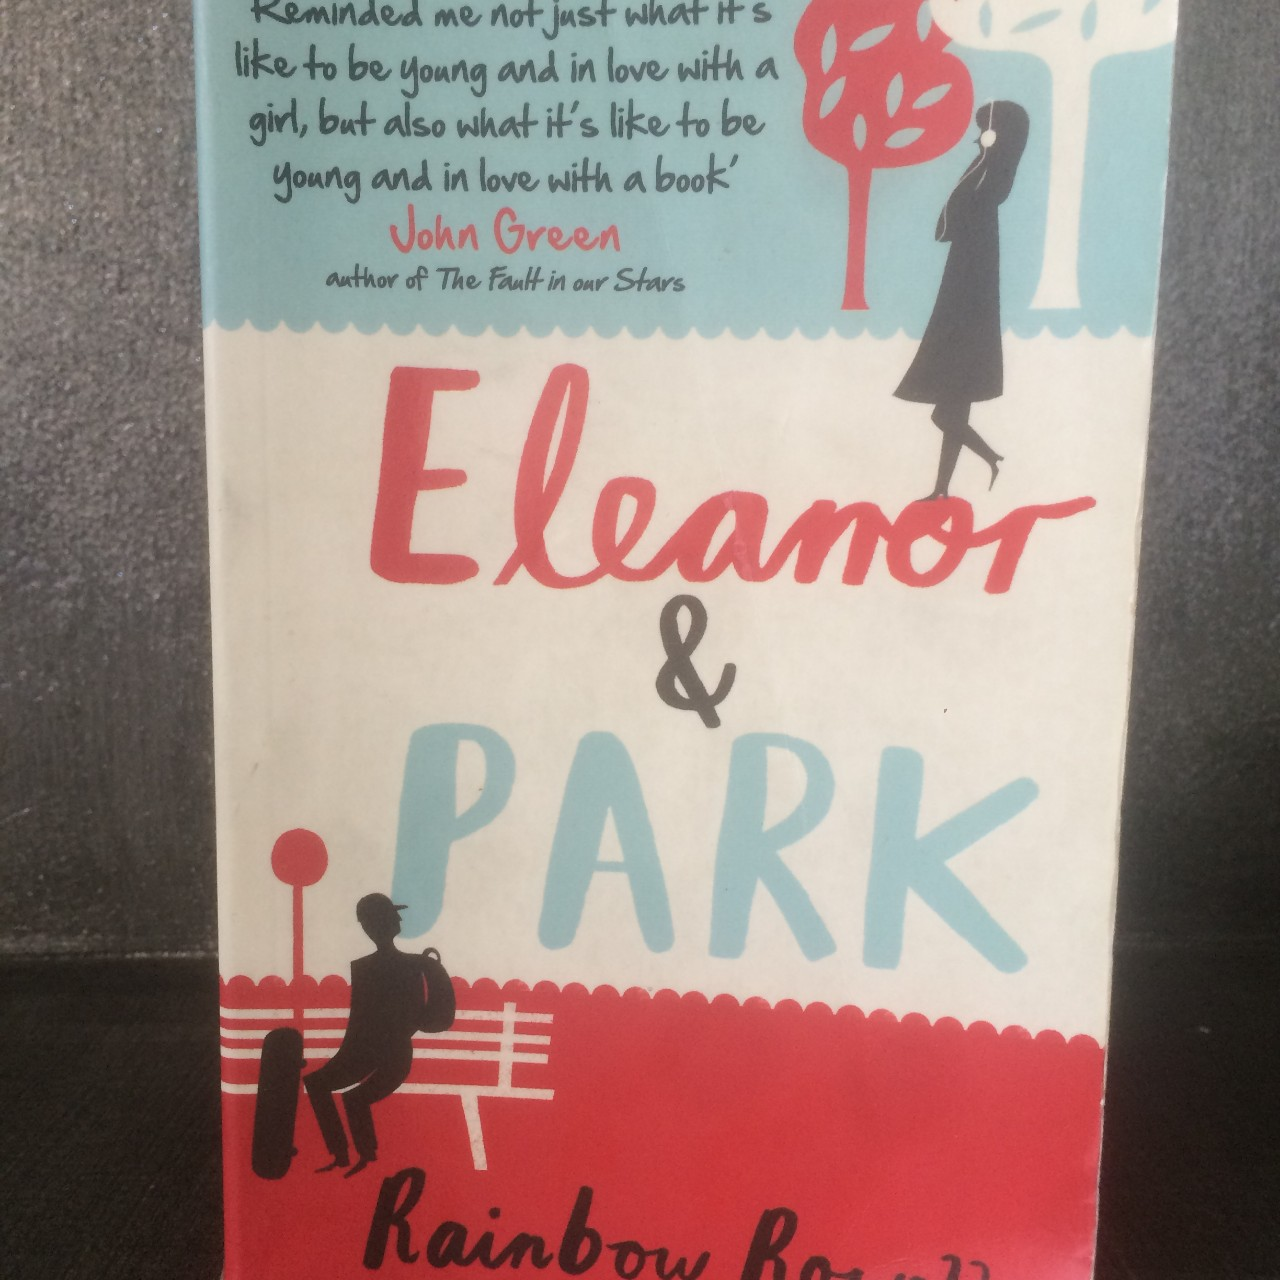 Product Image 1 - Eleanor & Park by Rainbow